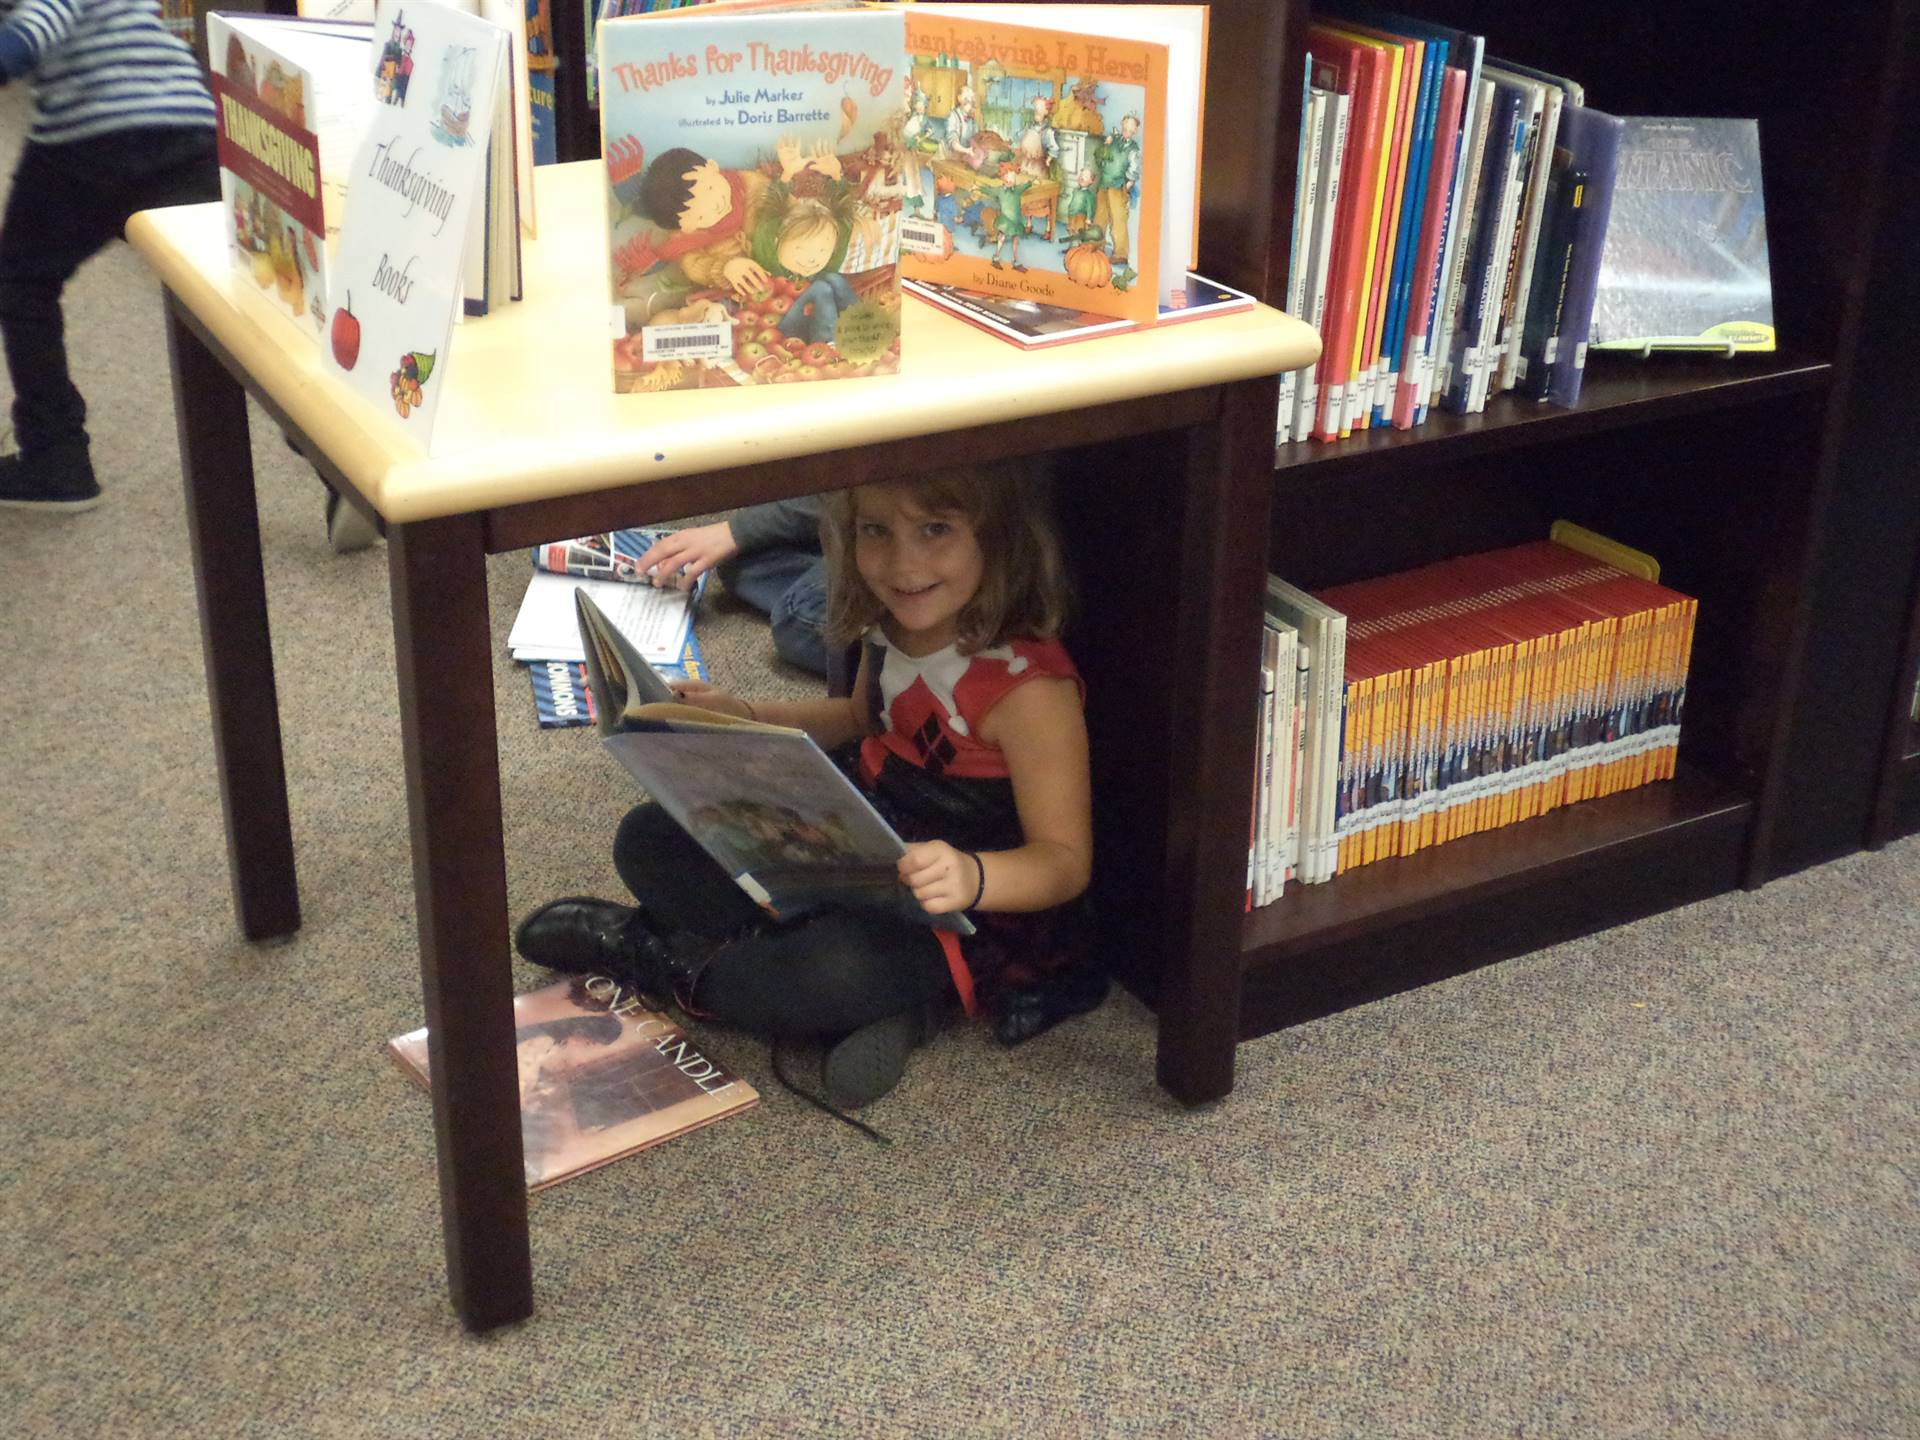 Reading under a table